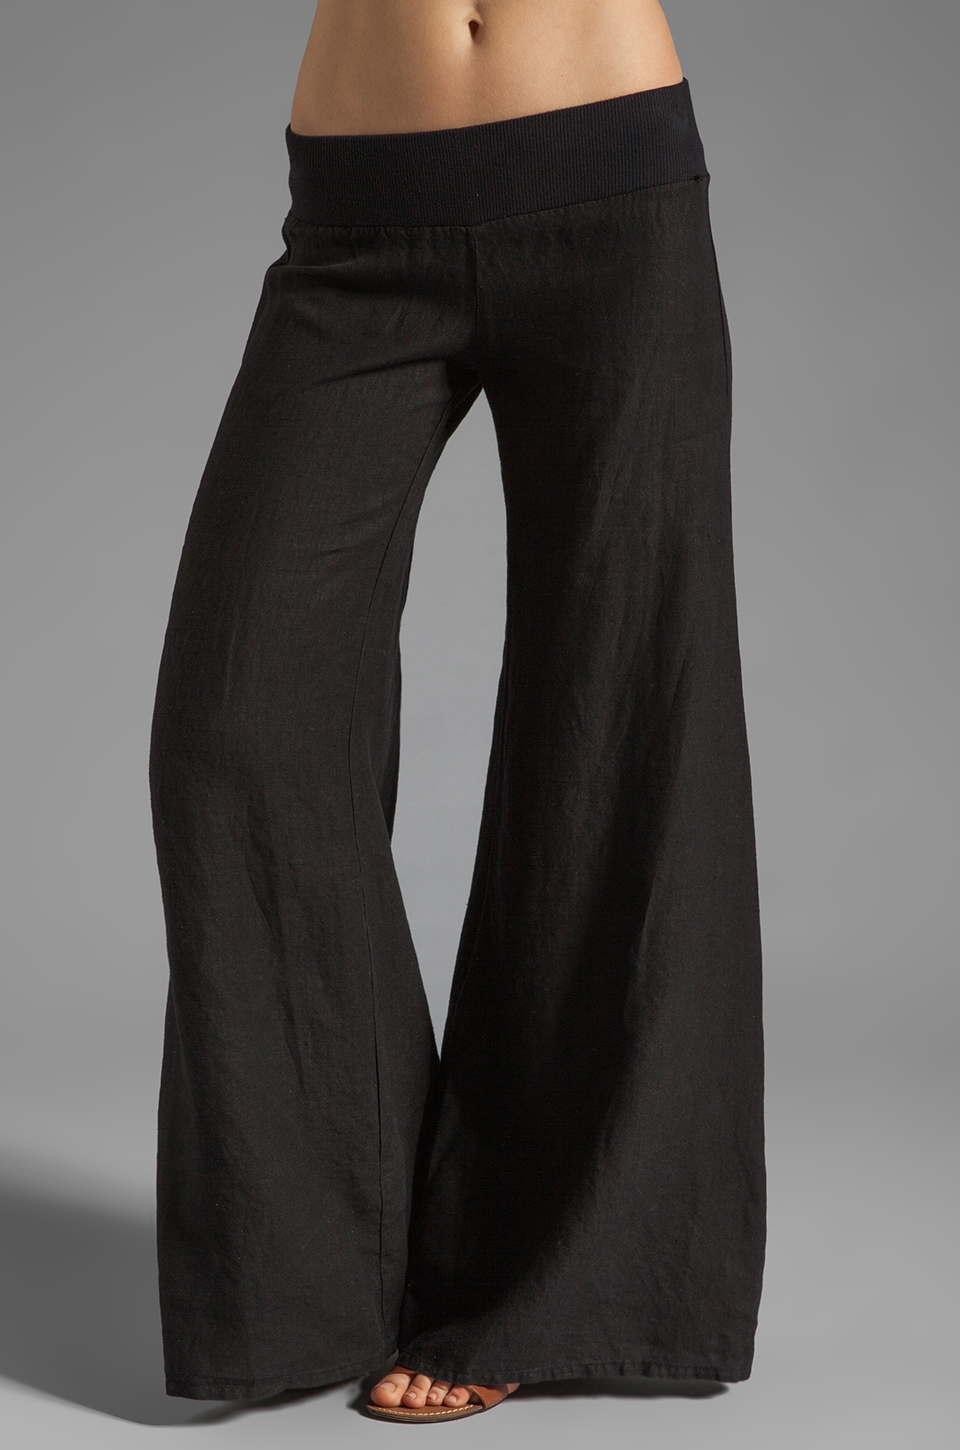 Enza Costa Linen Wide Leg Pant in Black